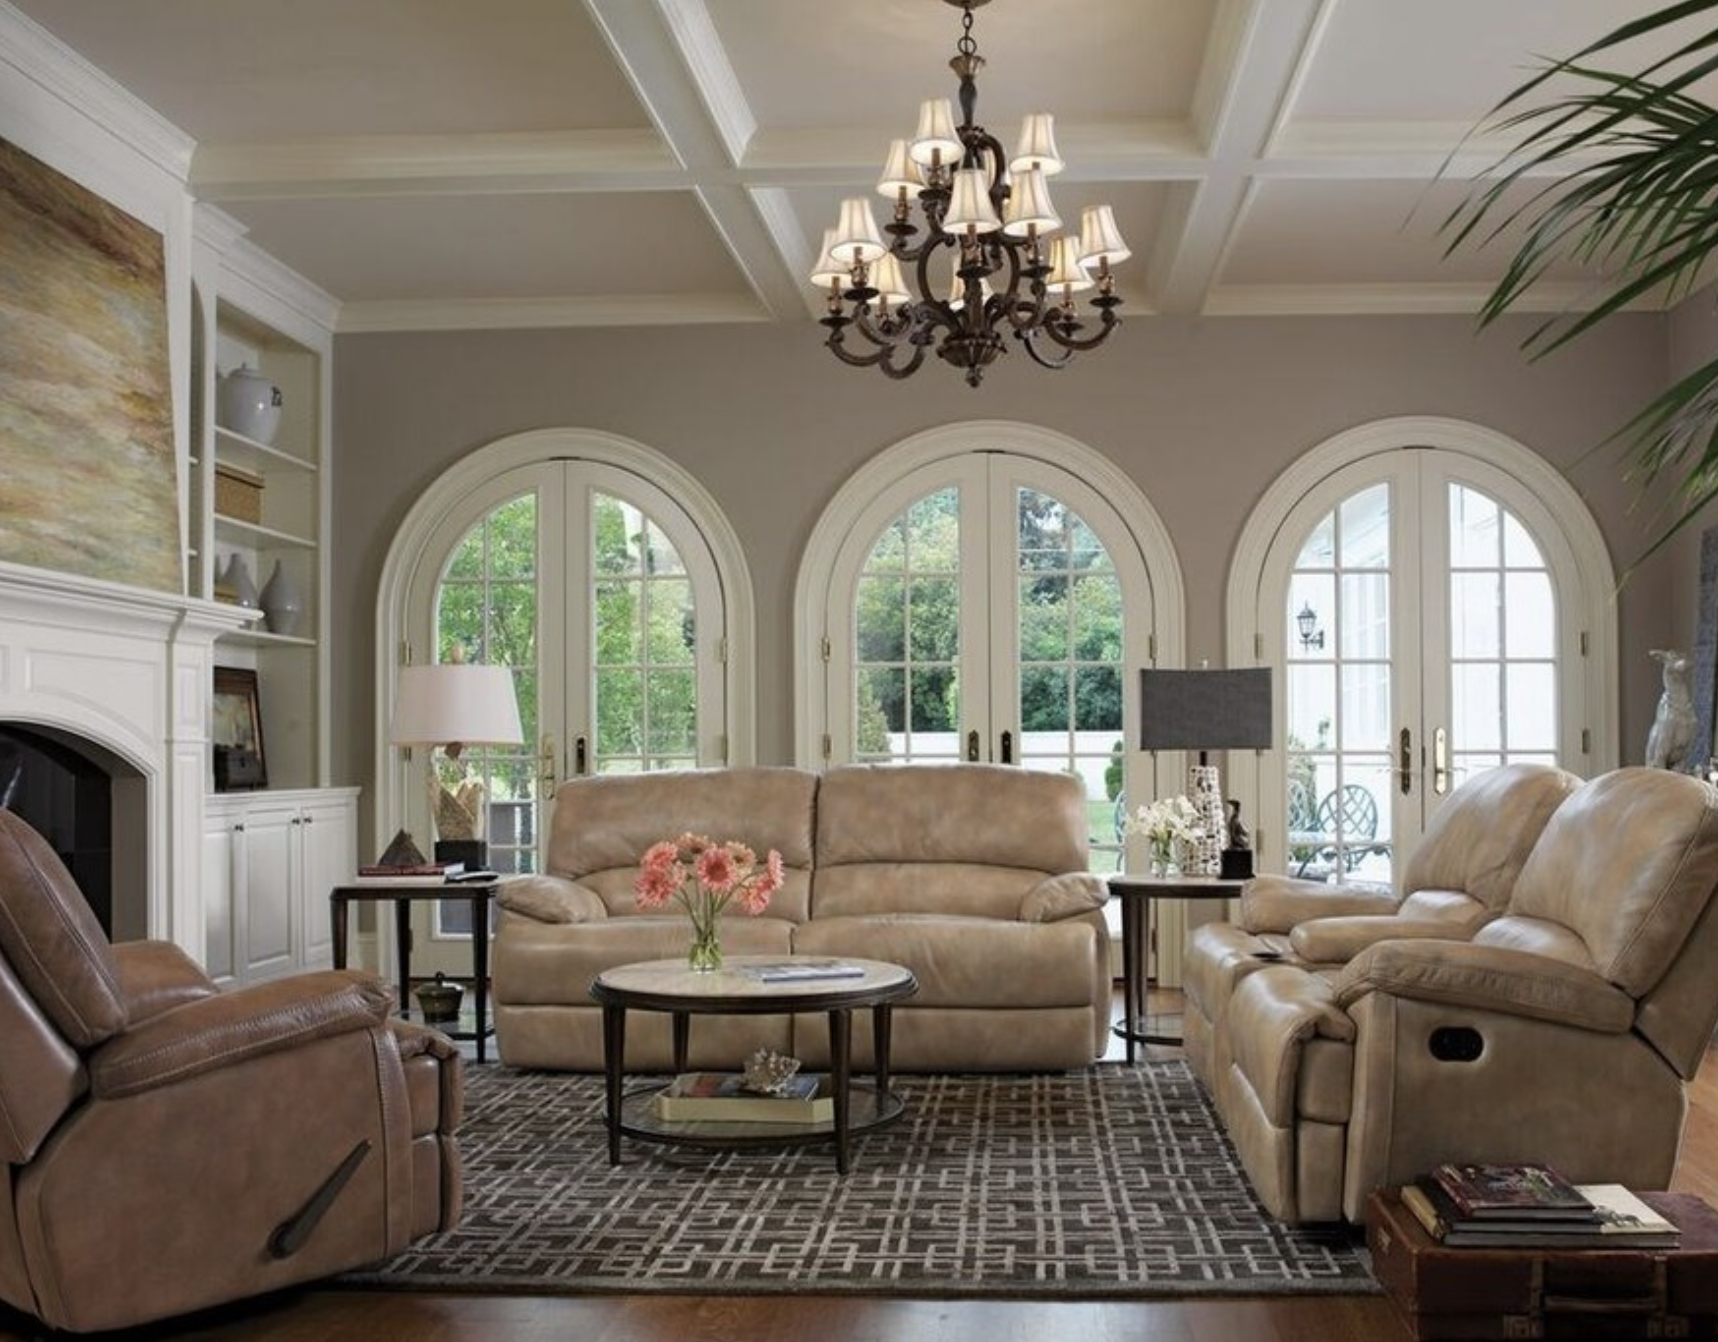 For a chic living room combine pale neutrals with vintage